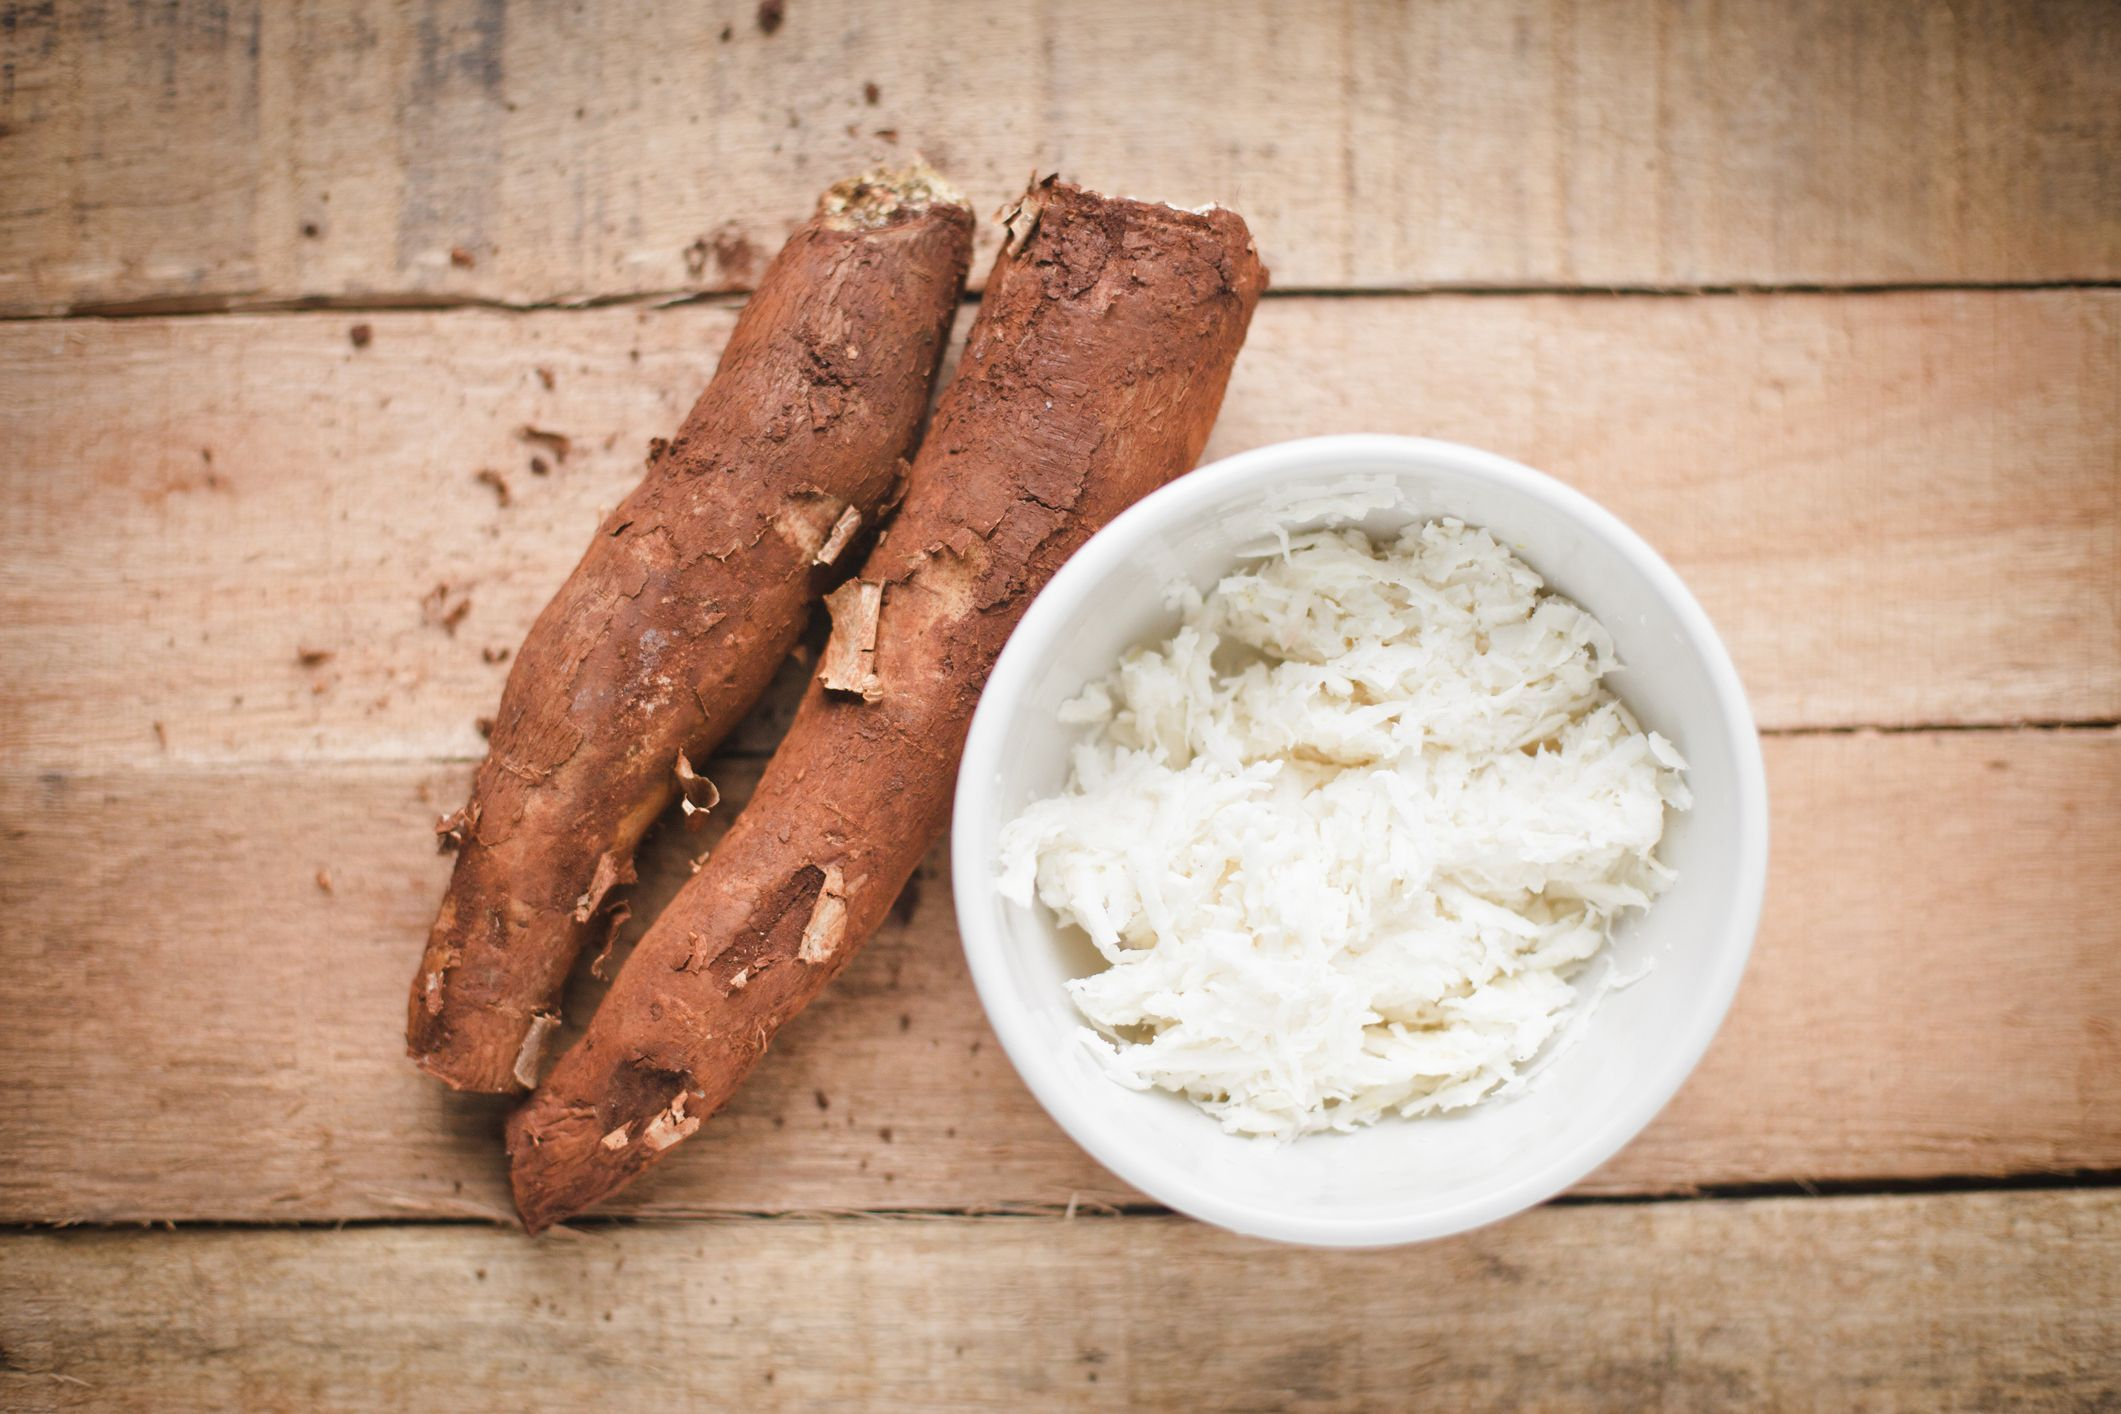 Haitian Manioc Dating White Im Recipes A Diabetics And For